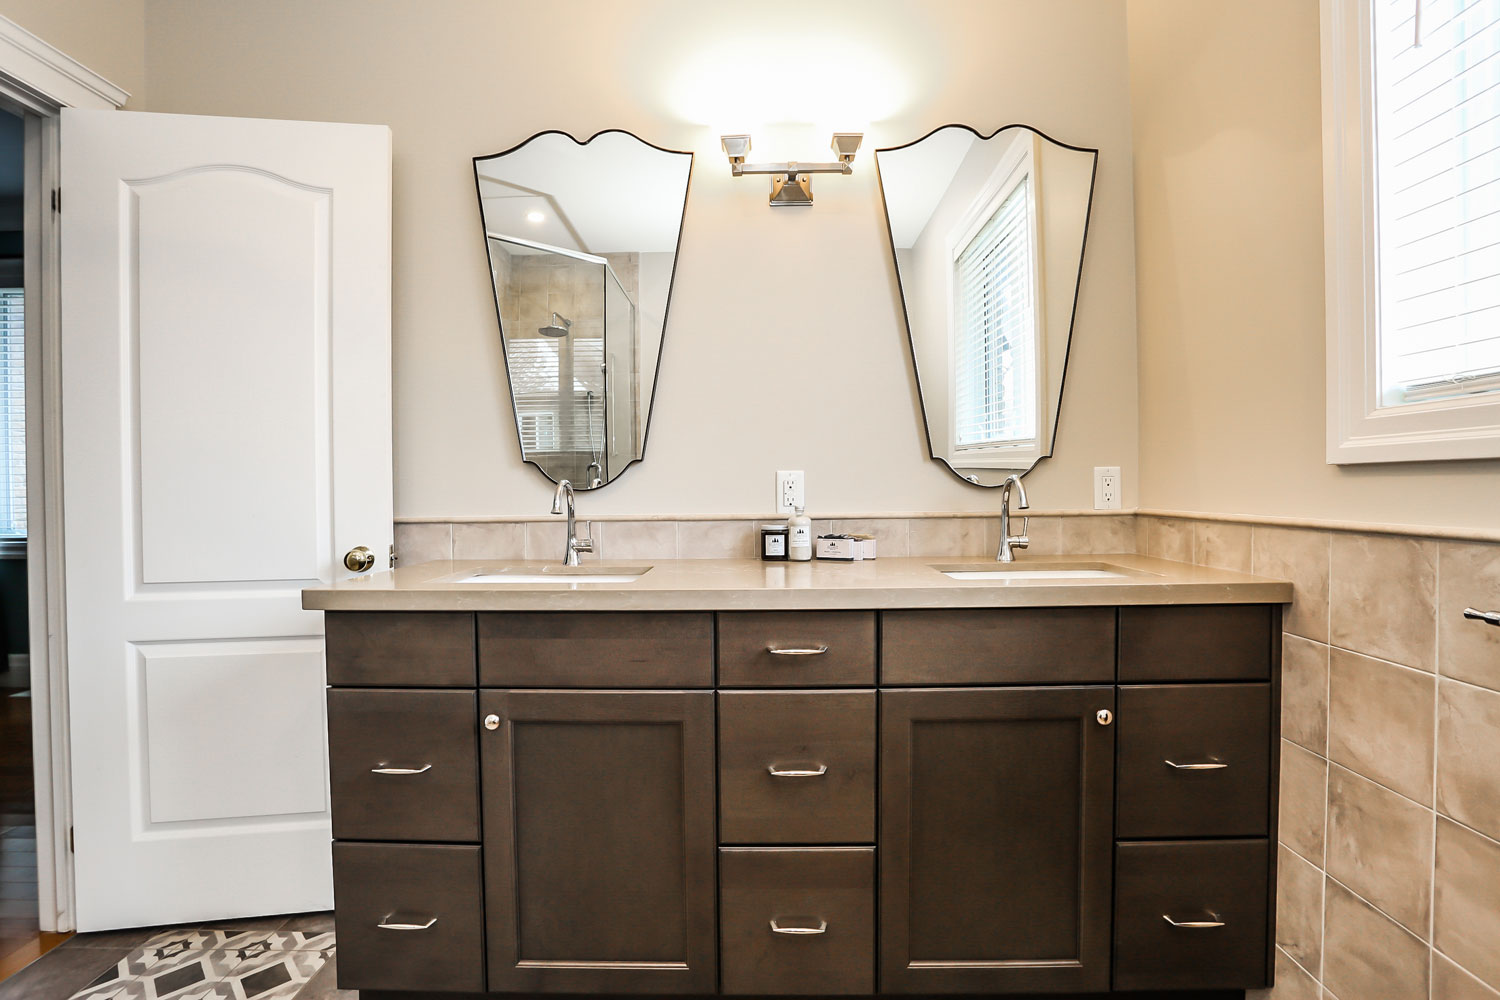 Ensuite with dual sinks and uniquely shaped mirrors